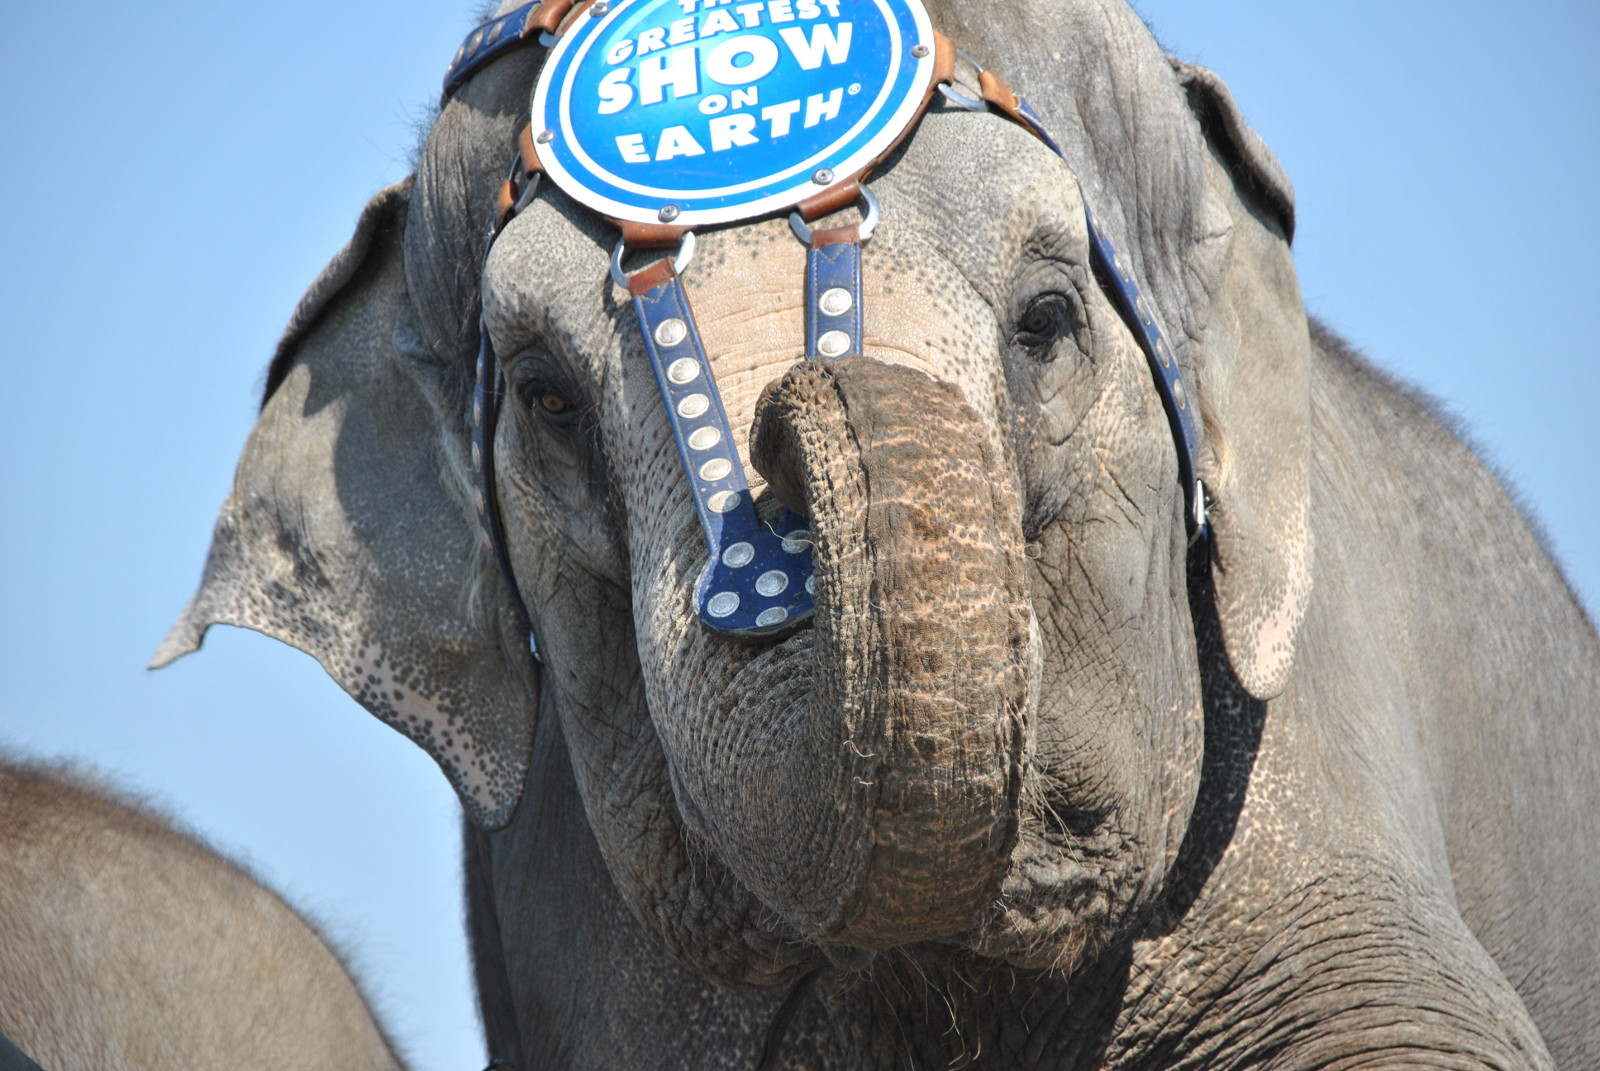 Ringling May Have Won the Battle, But We'll Win the War Against Circus Captivity